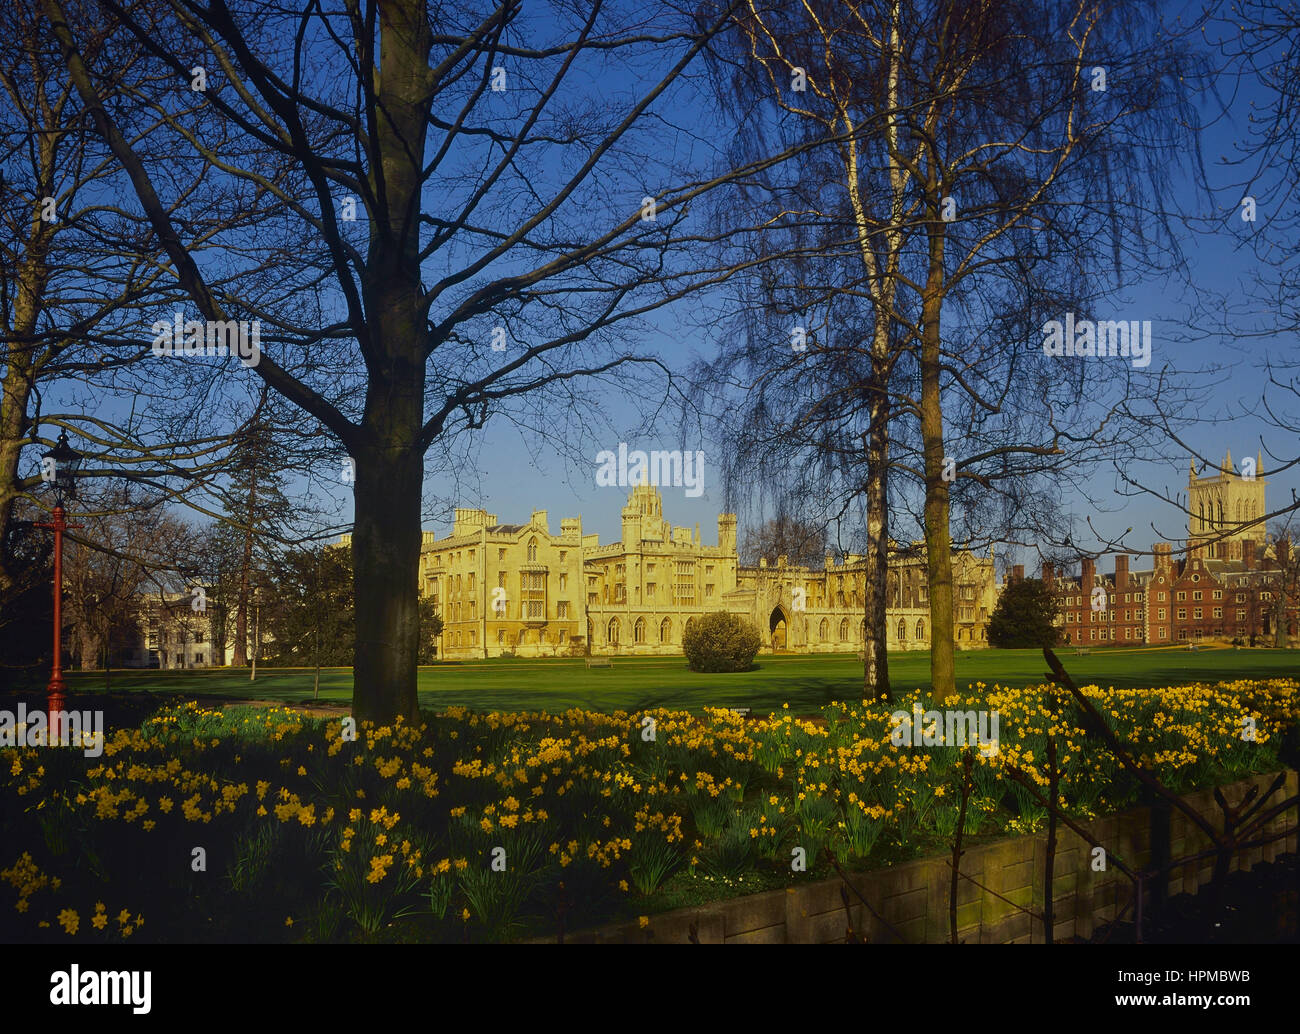 The New Court from The Backs, St John's College, Cambridge, England, UK - Stock Image